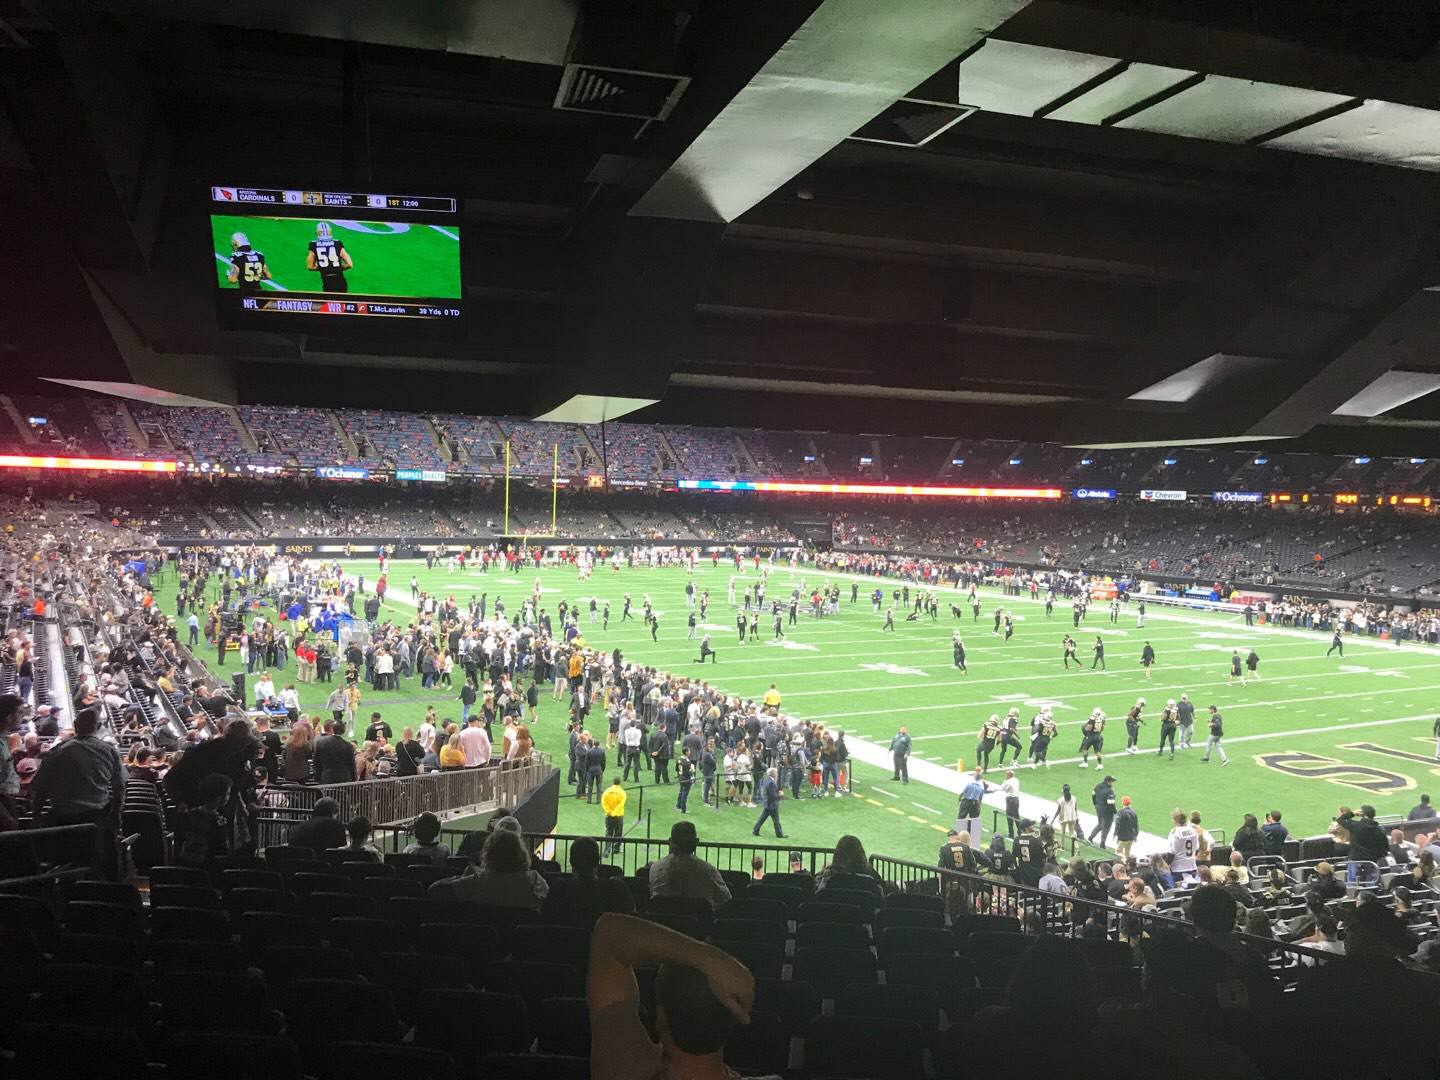 Mercedes-Benz Superdome Section 134 Row 35 Seat 10